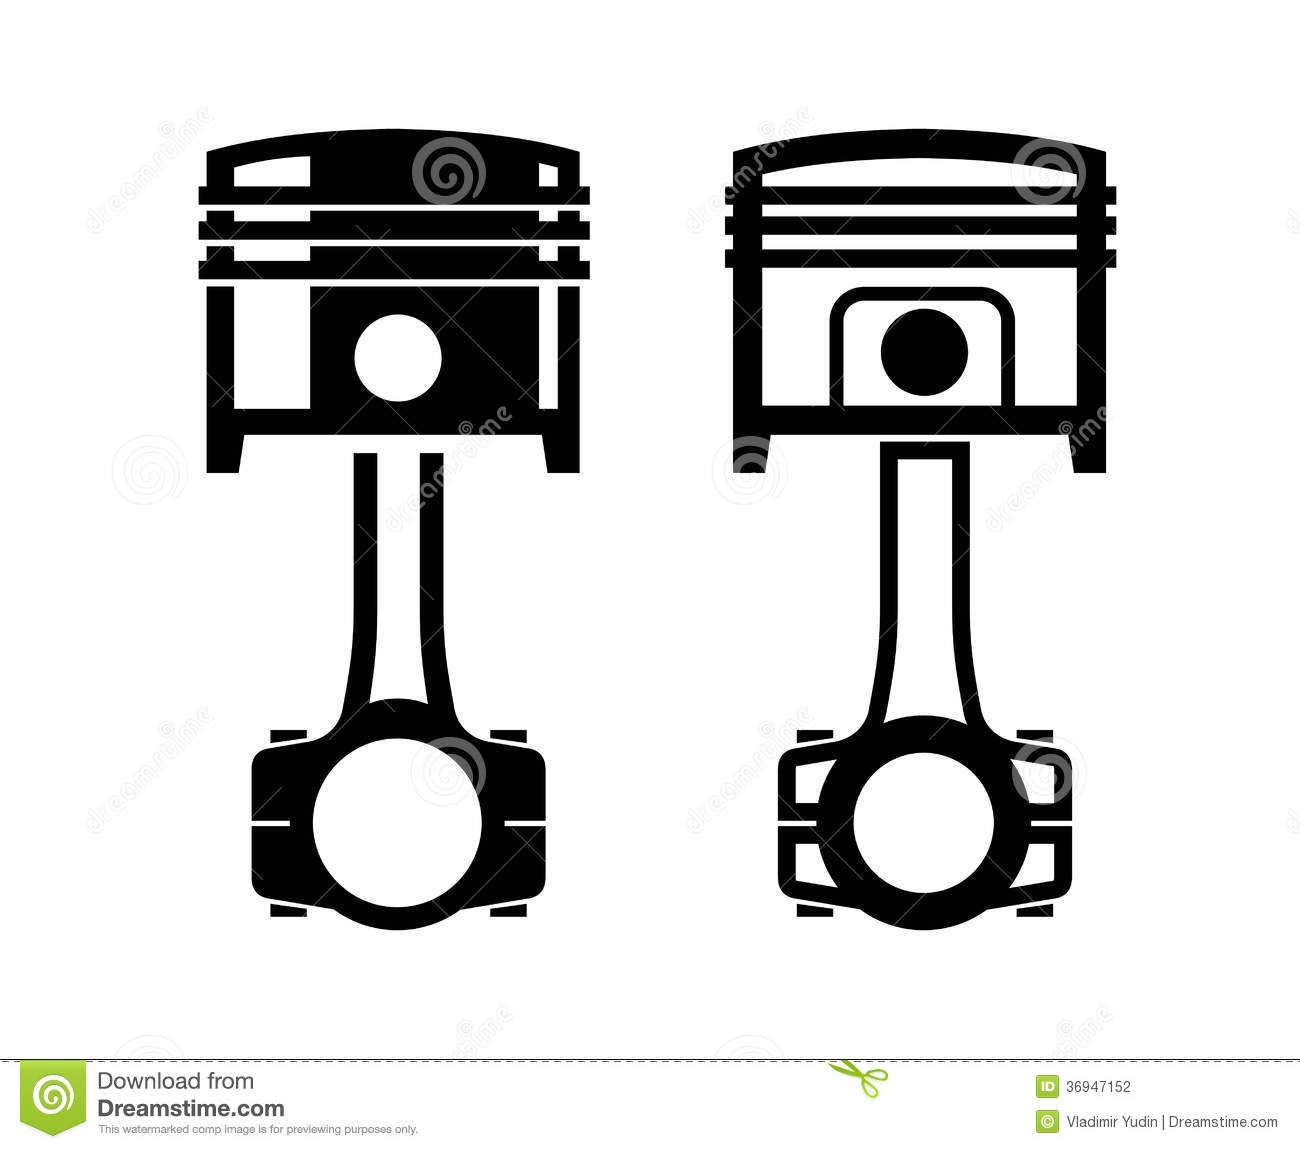 Pitons clipart Piston Clipart collection pistons Clipart